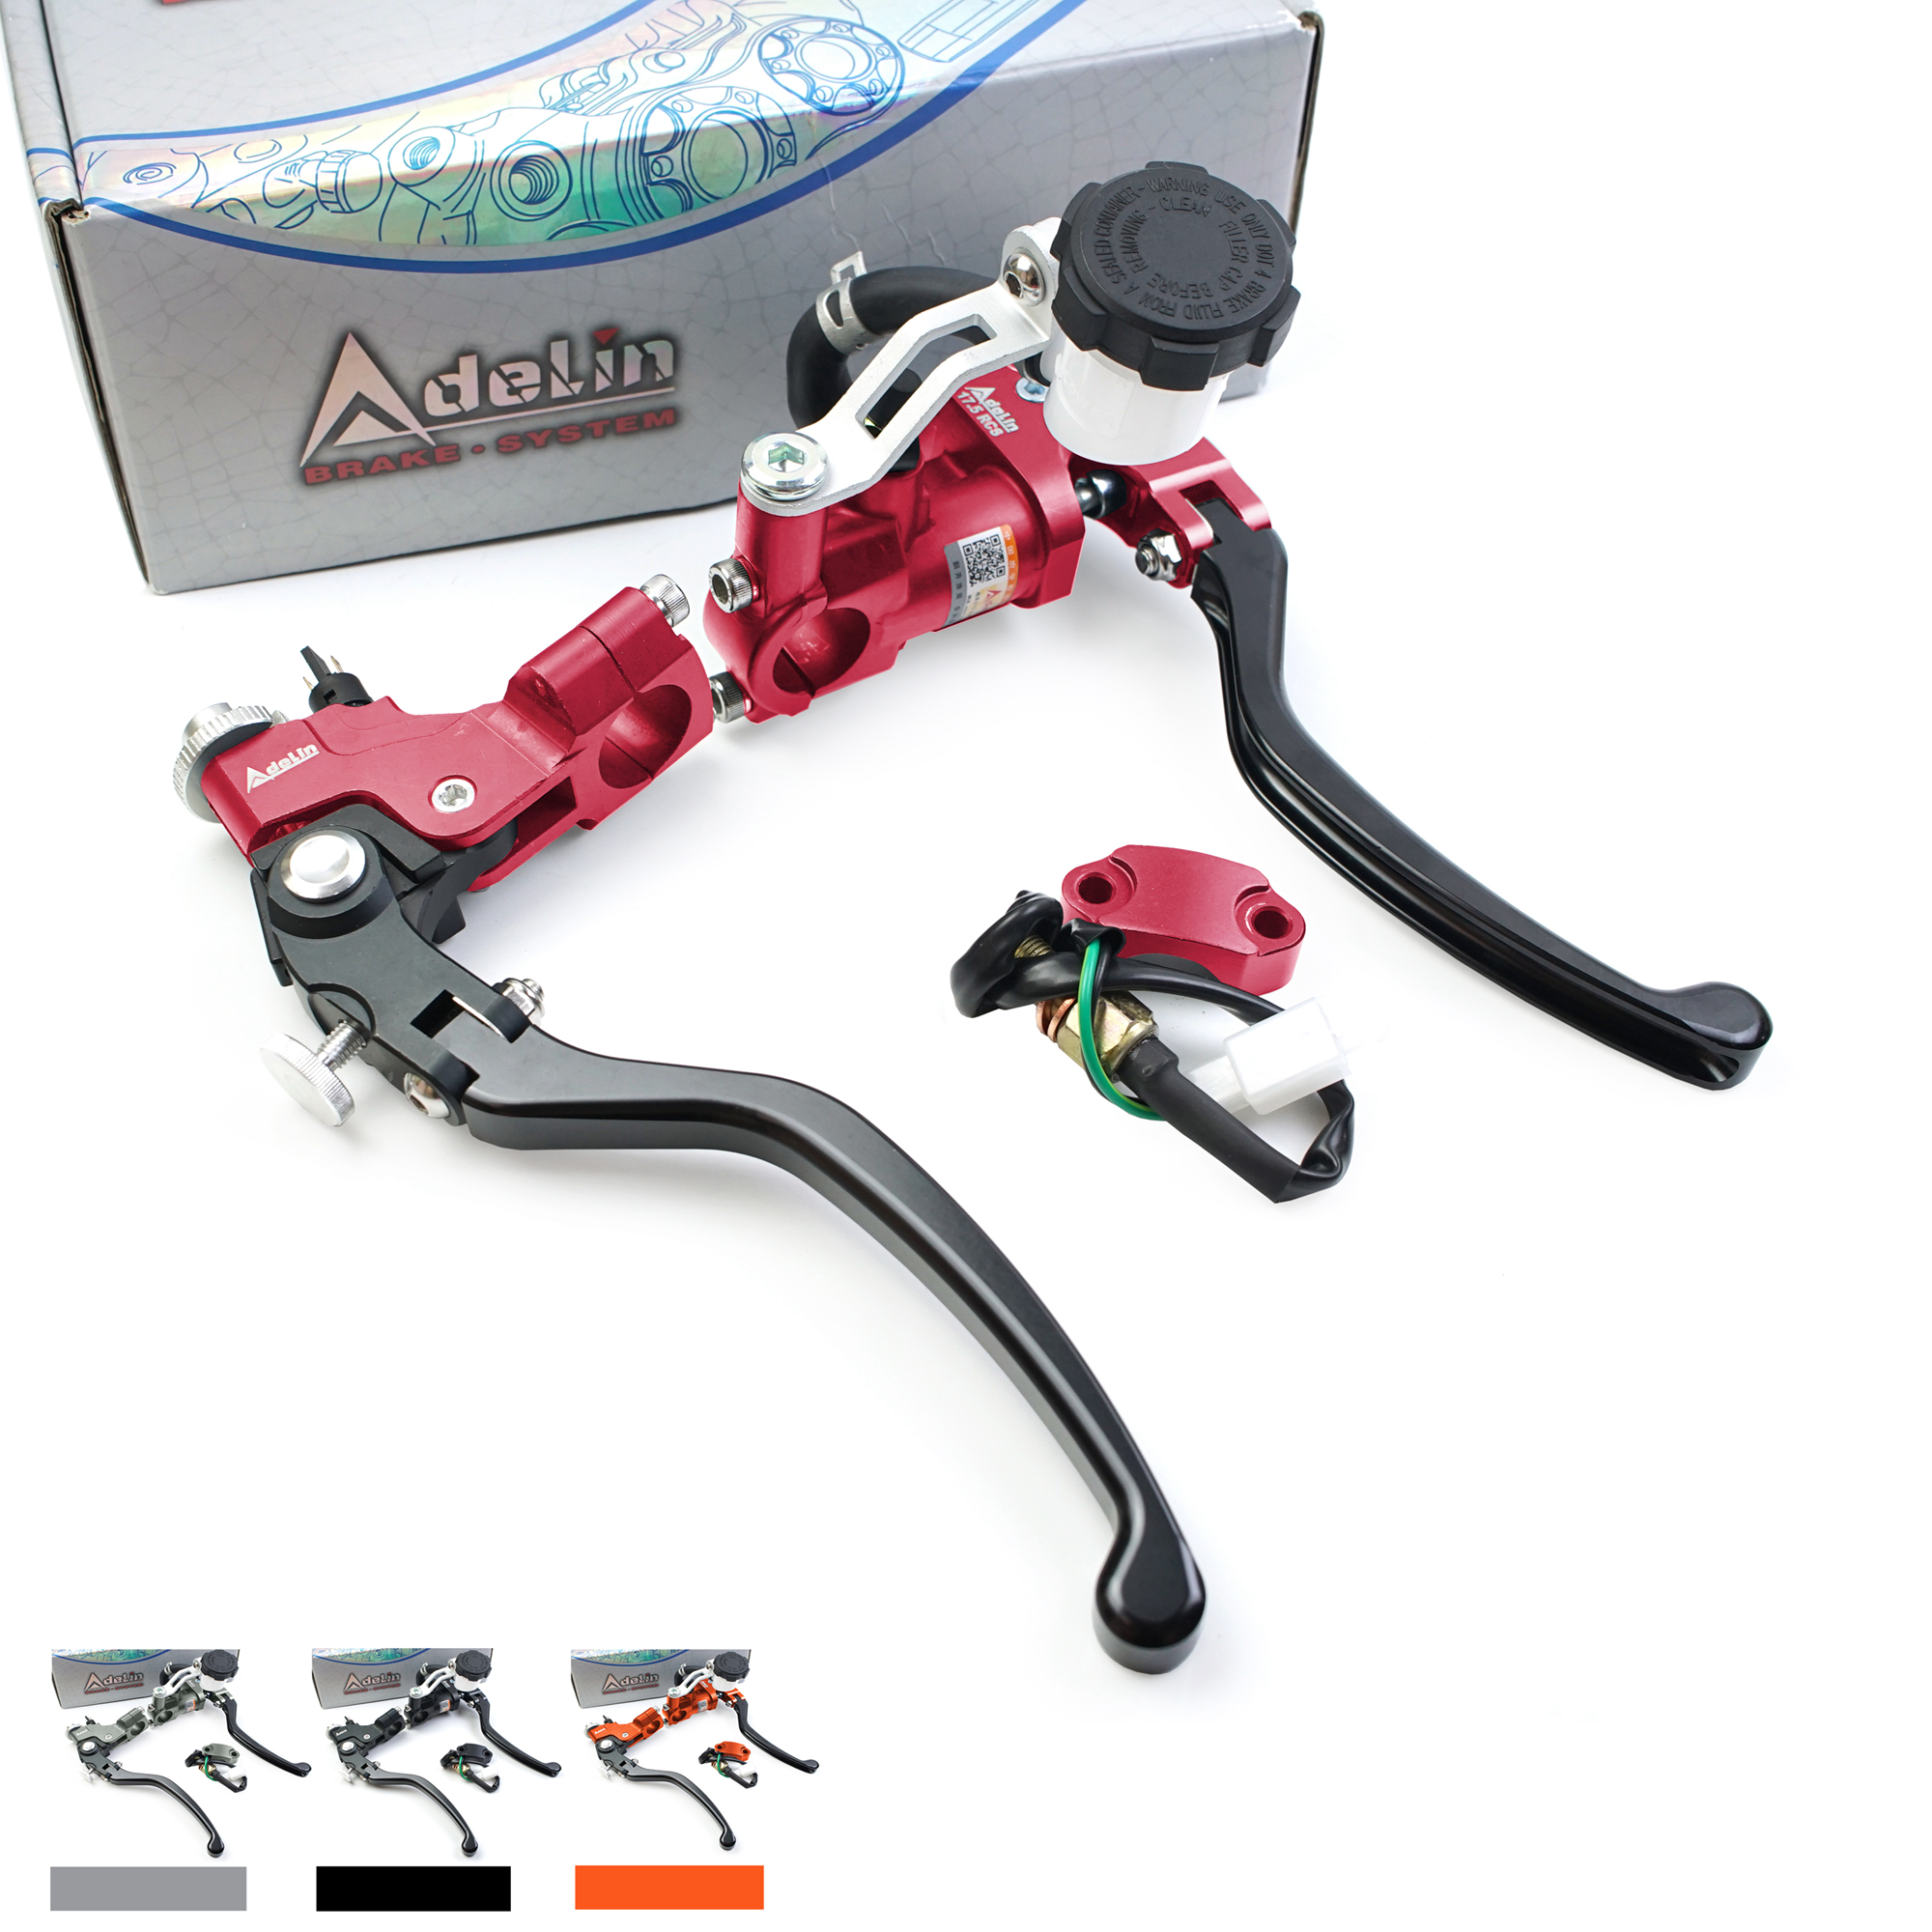 Adelin PX7 19RCS 17.5RCS Perch Clutch Motorcycle Brake Master Cylinder Cable Line Clutch Clamp 7/8